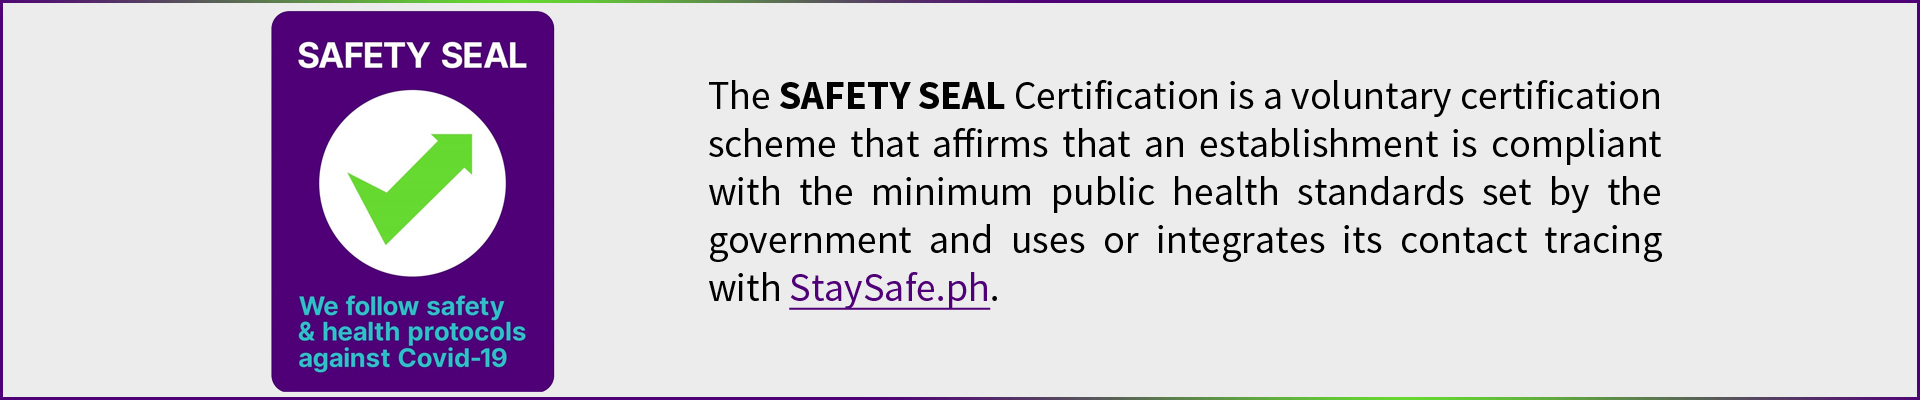 Safety_Seal